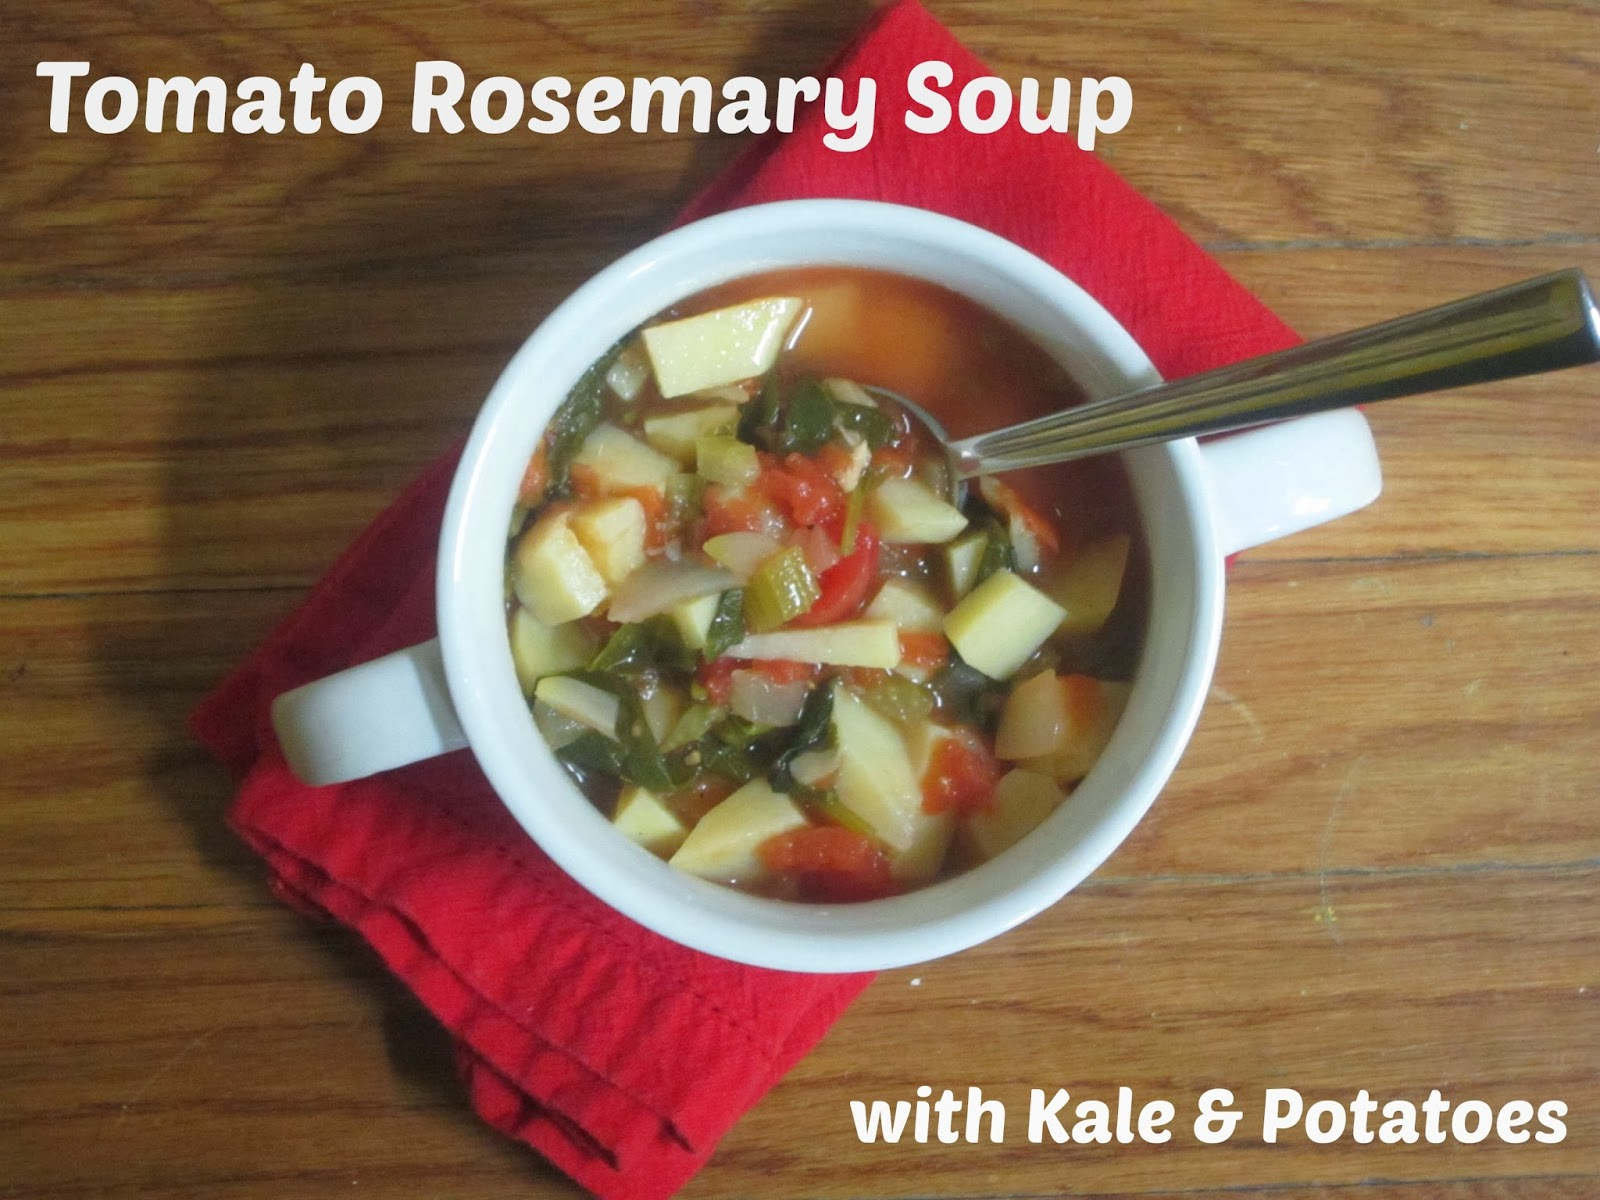 Tomato Rosemary Soup with Kale & Potatoes | The Economical Eater